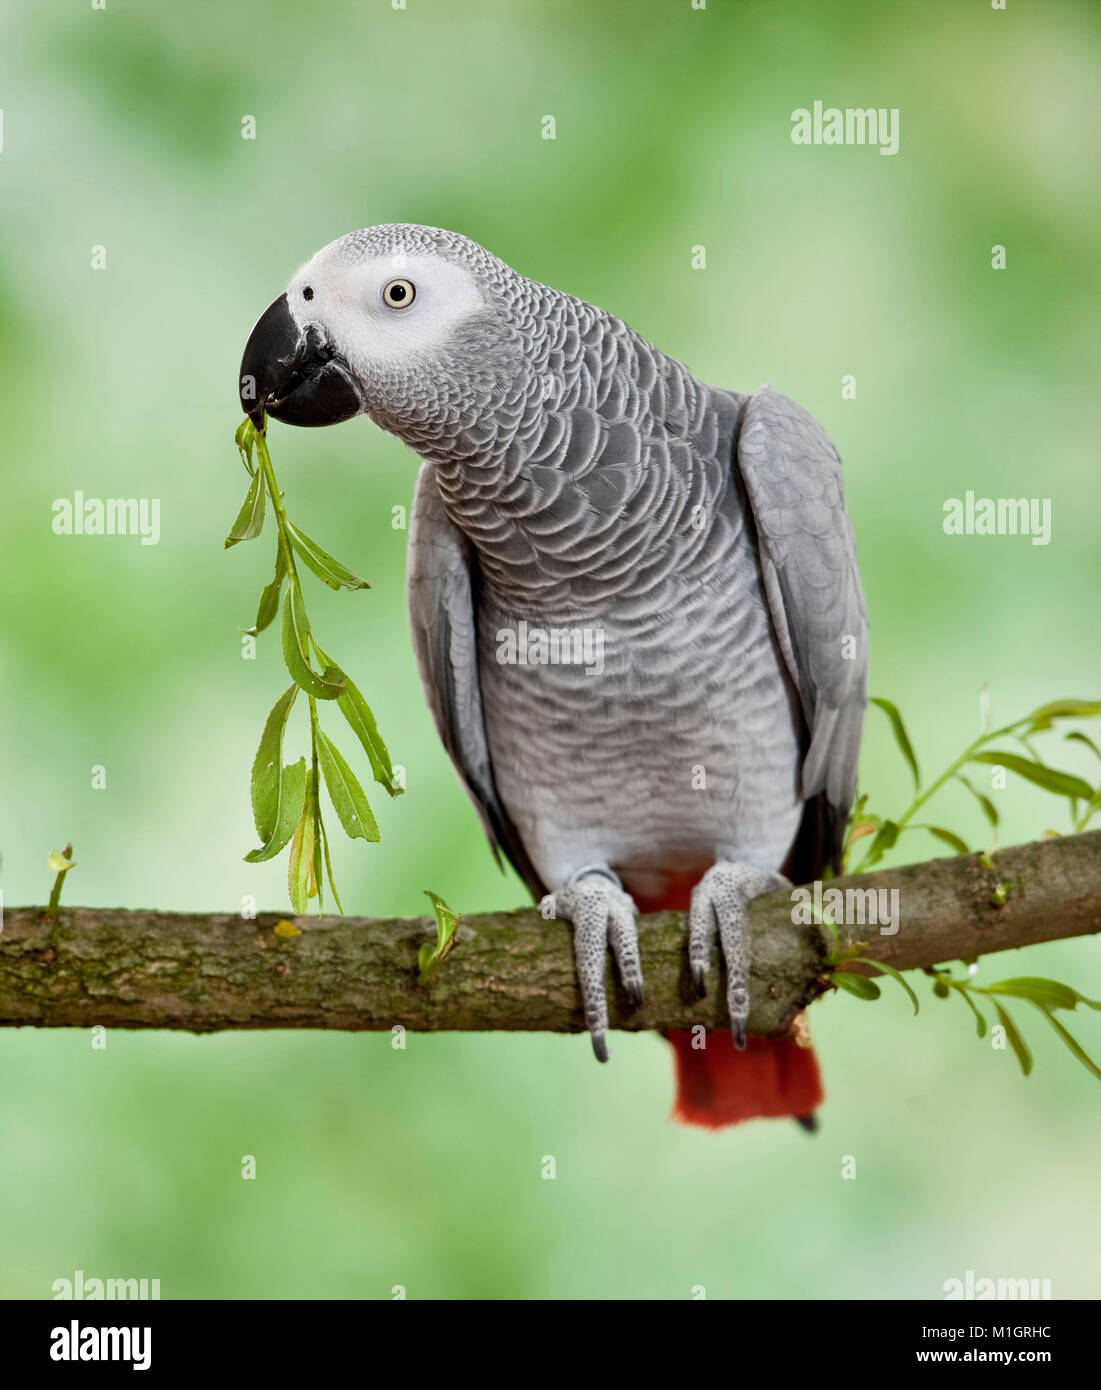 African Gray Parrot  (Psittacus erithacus). Adult perched on branch, nibbling on twig. Germany - Stock Image